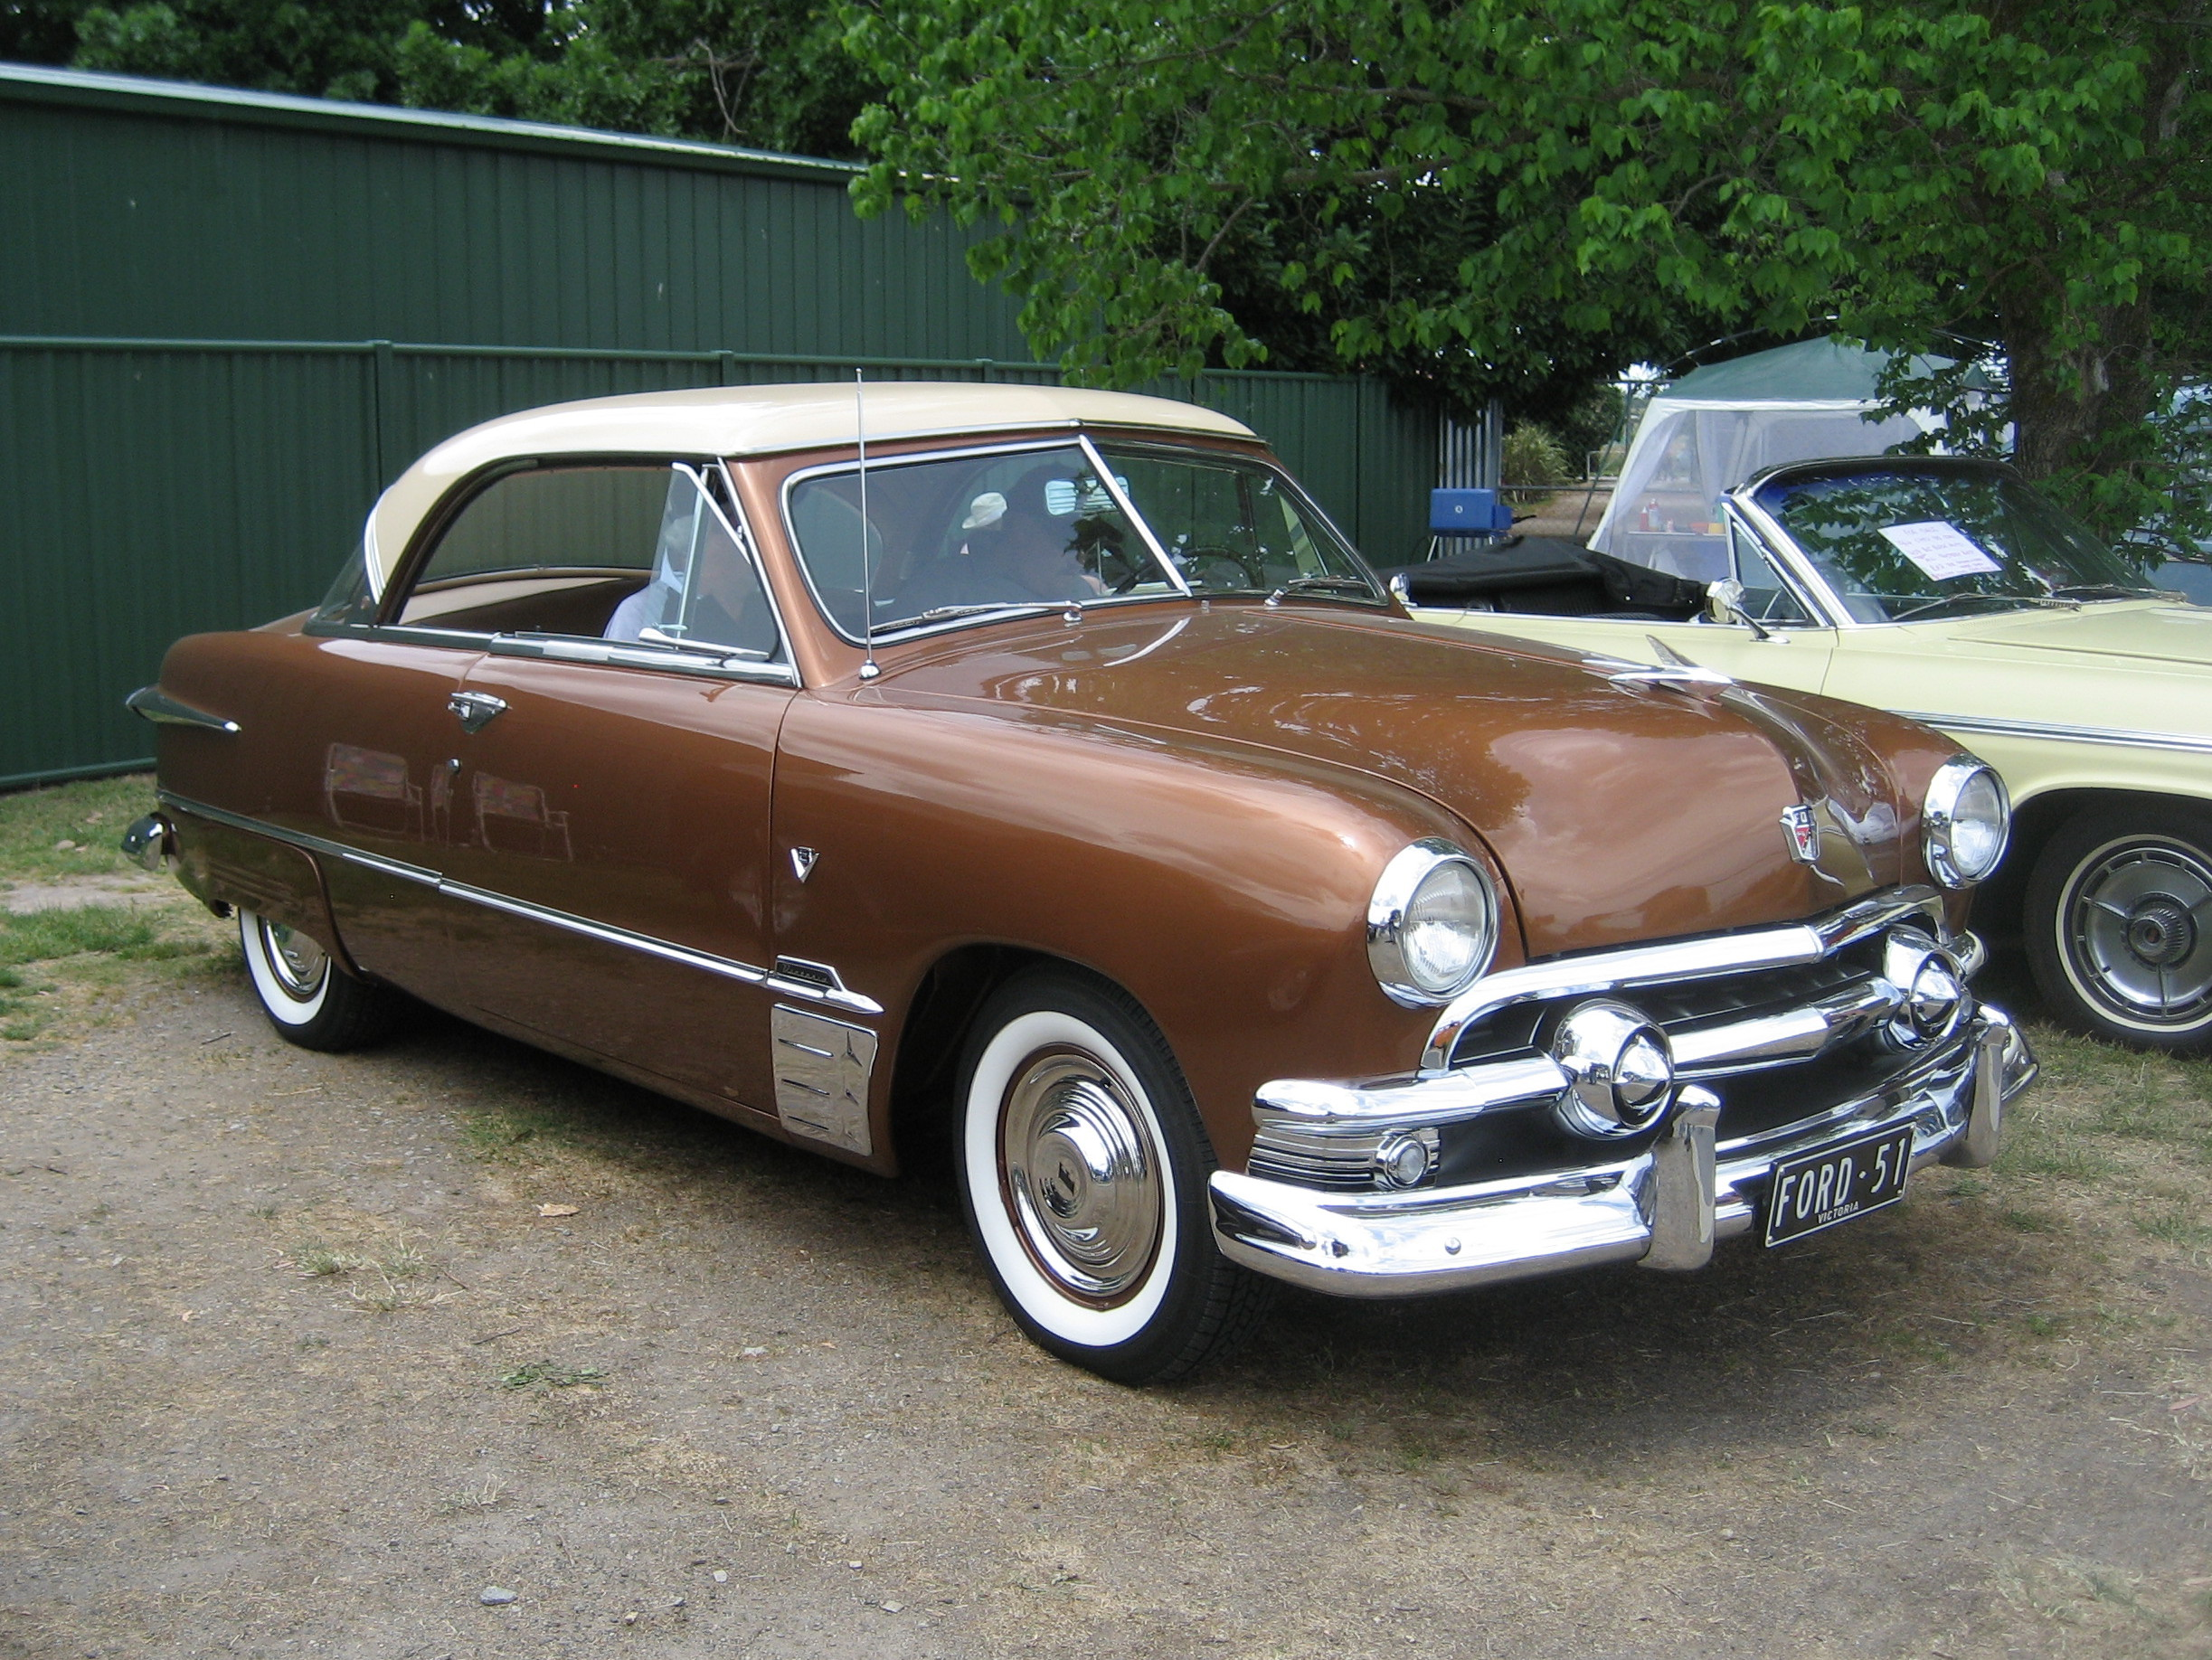 File:1951 Ford Victoria Coupe